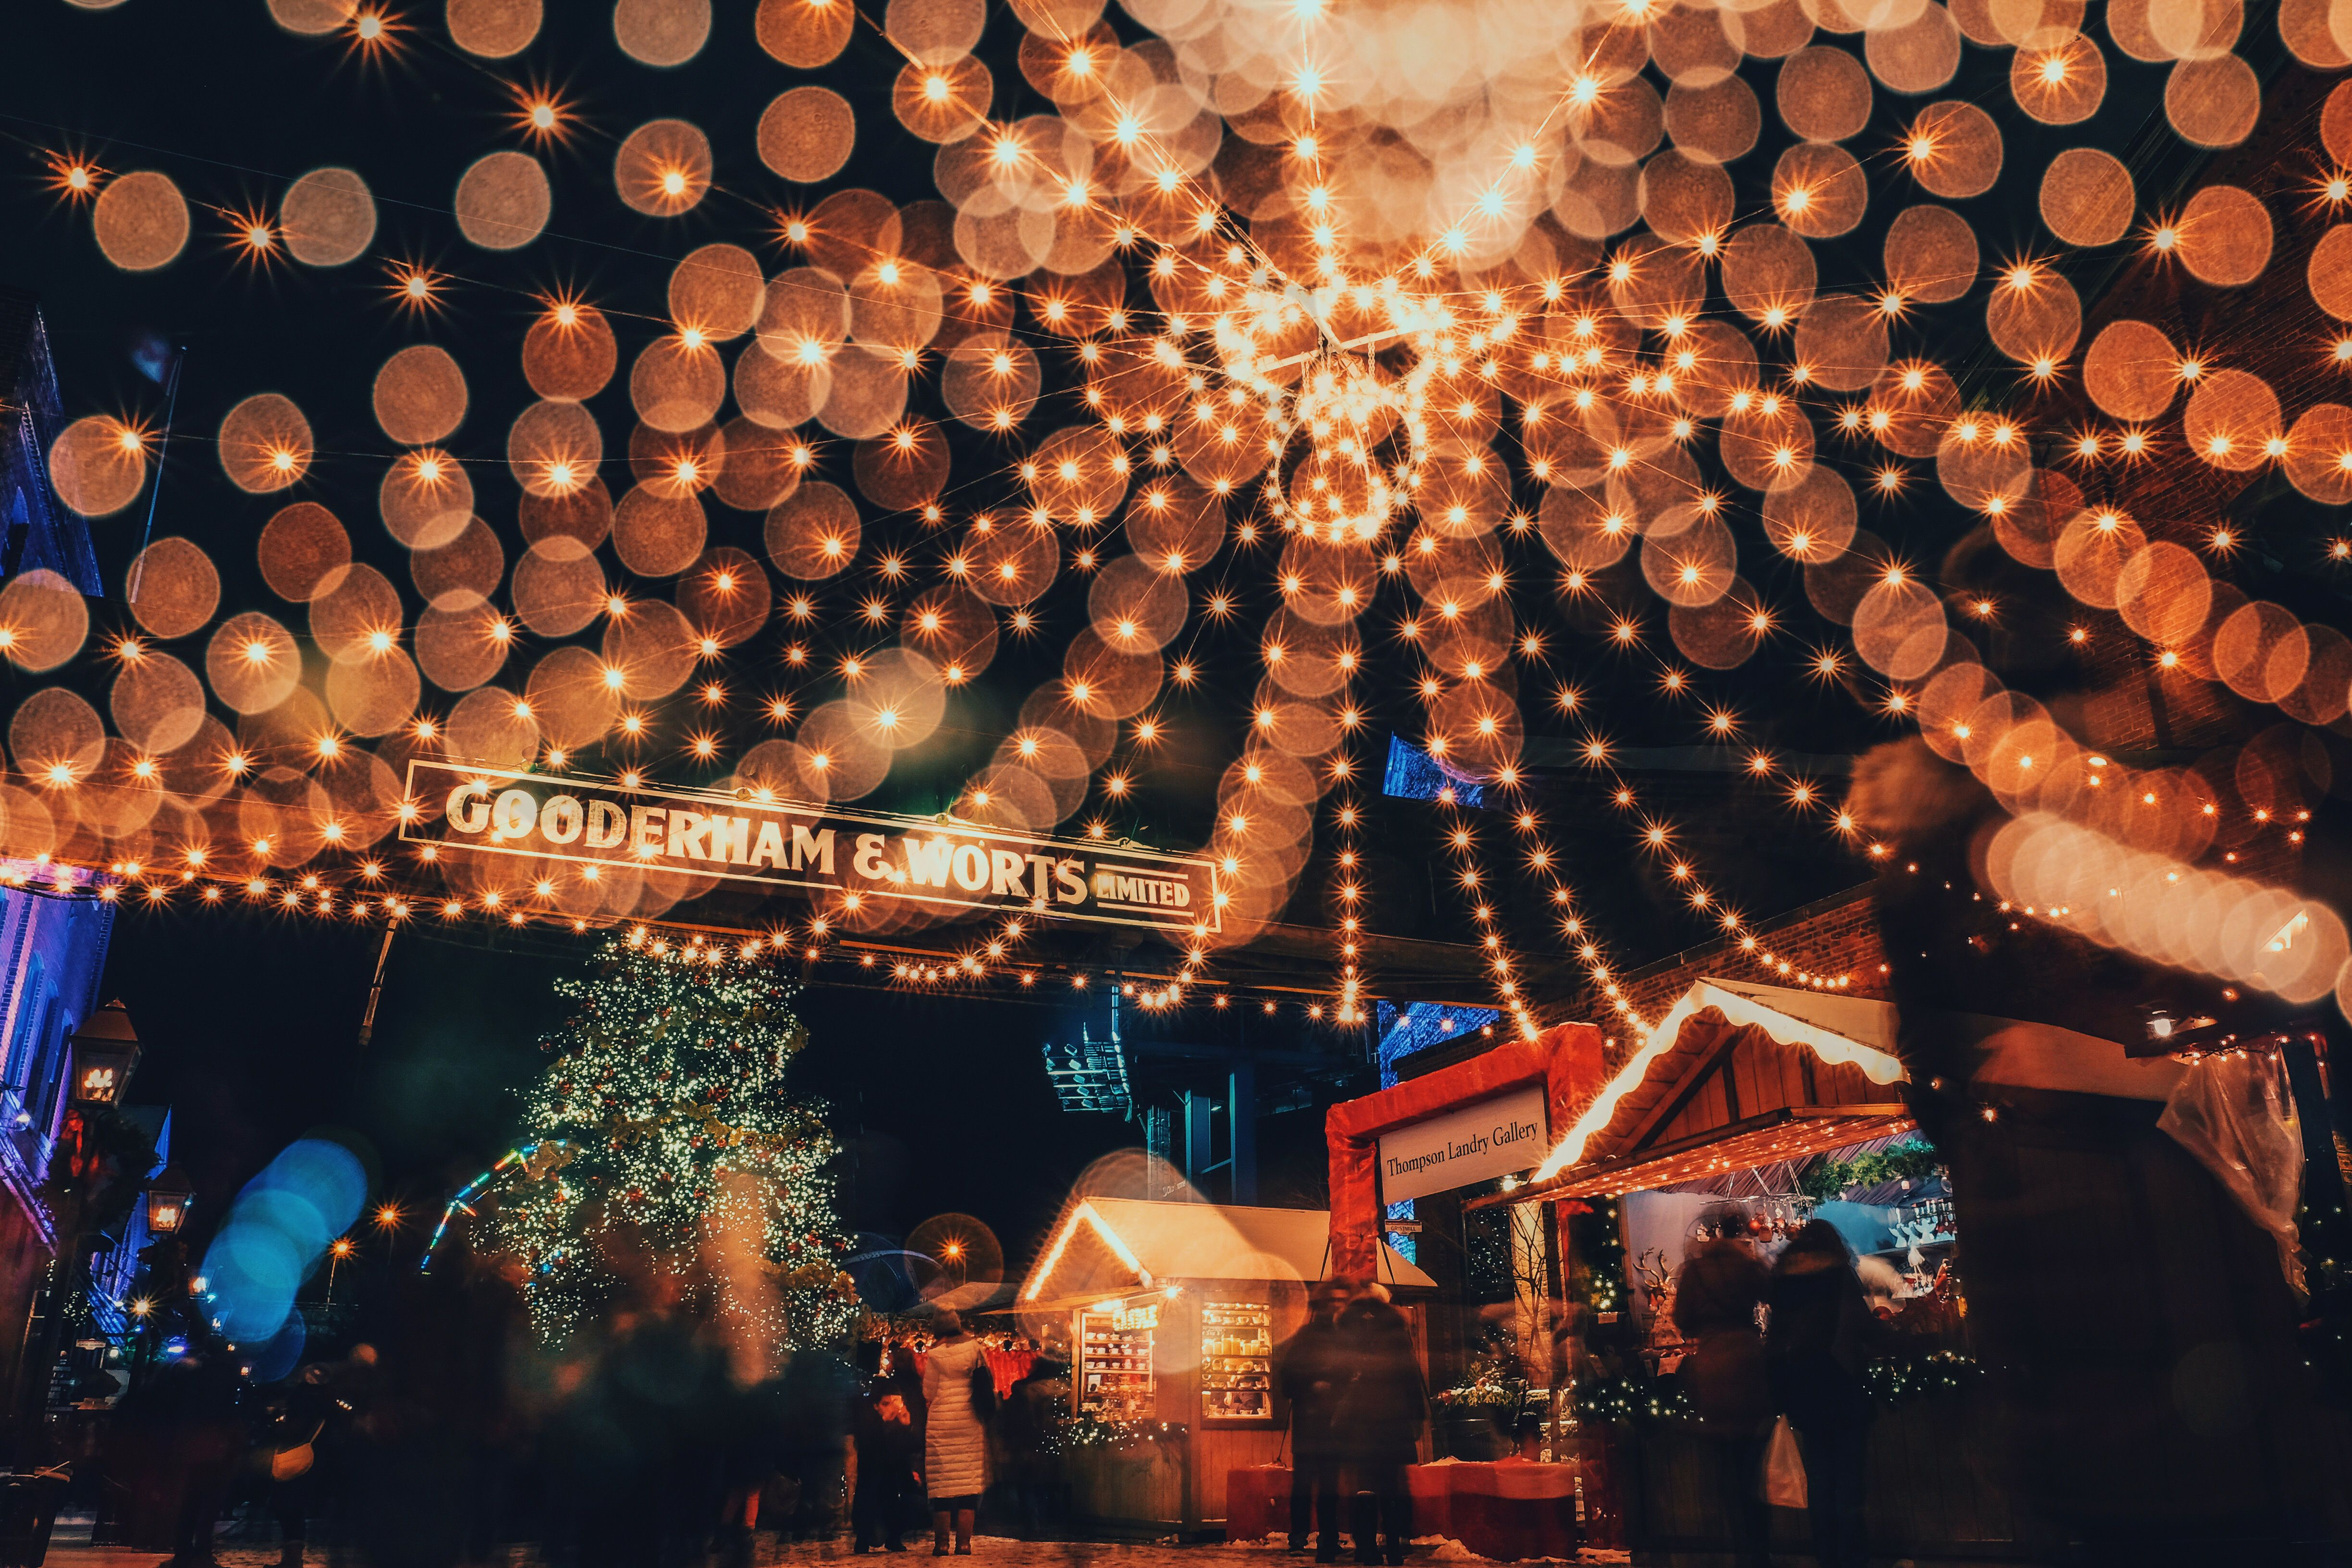 Christmas market with string lights and Christmas trees in Toronto.